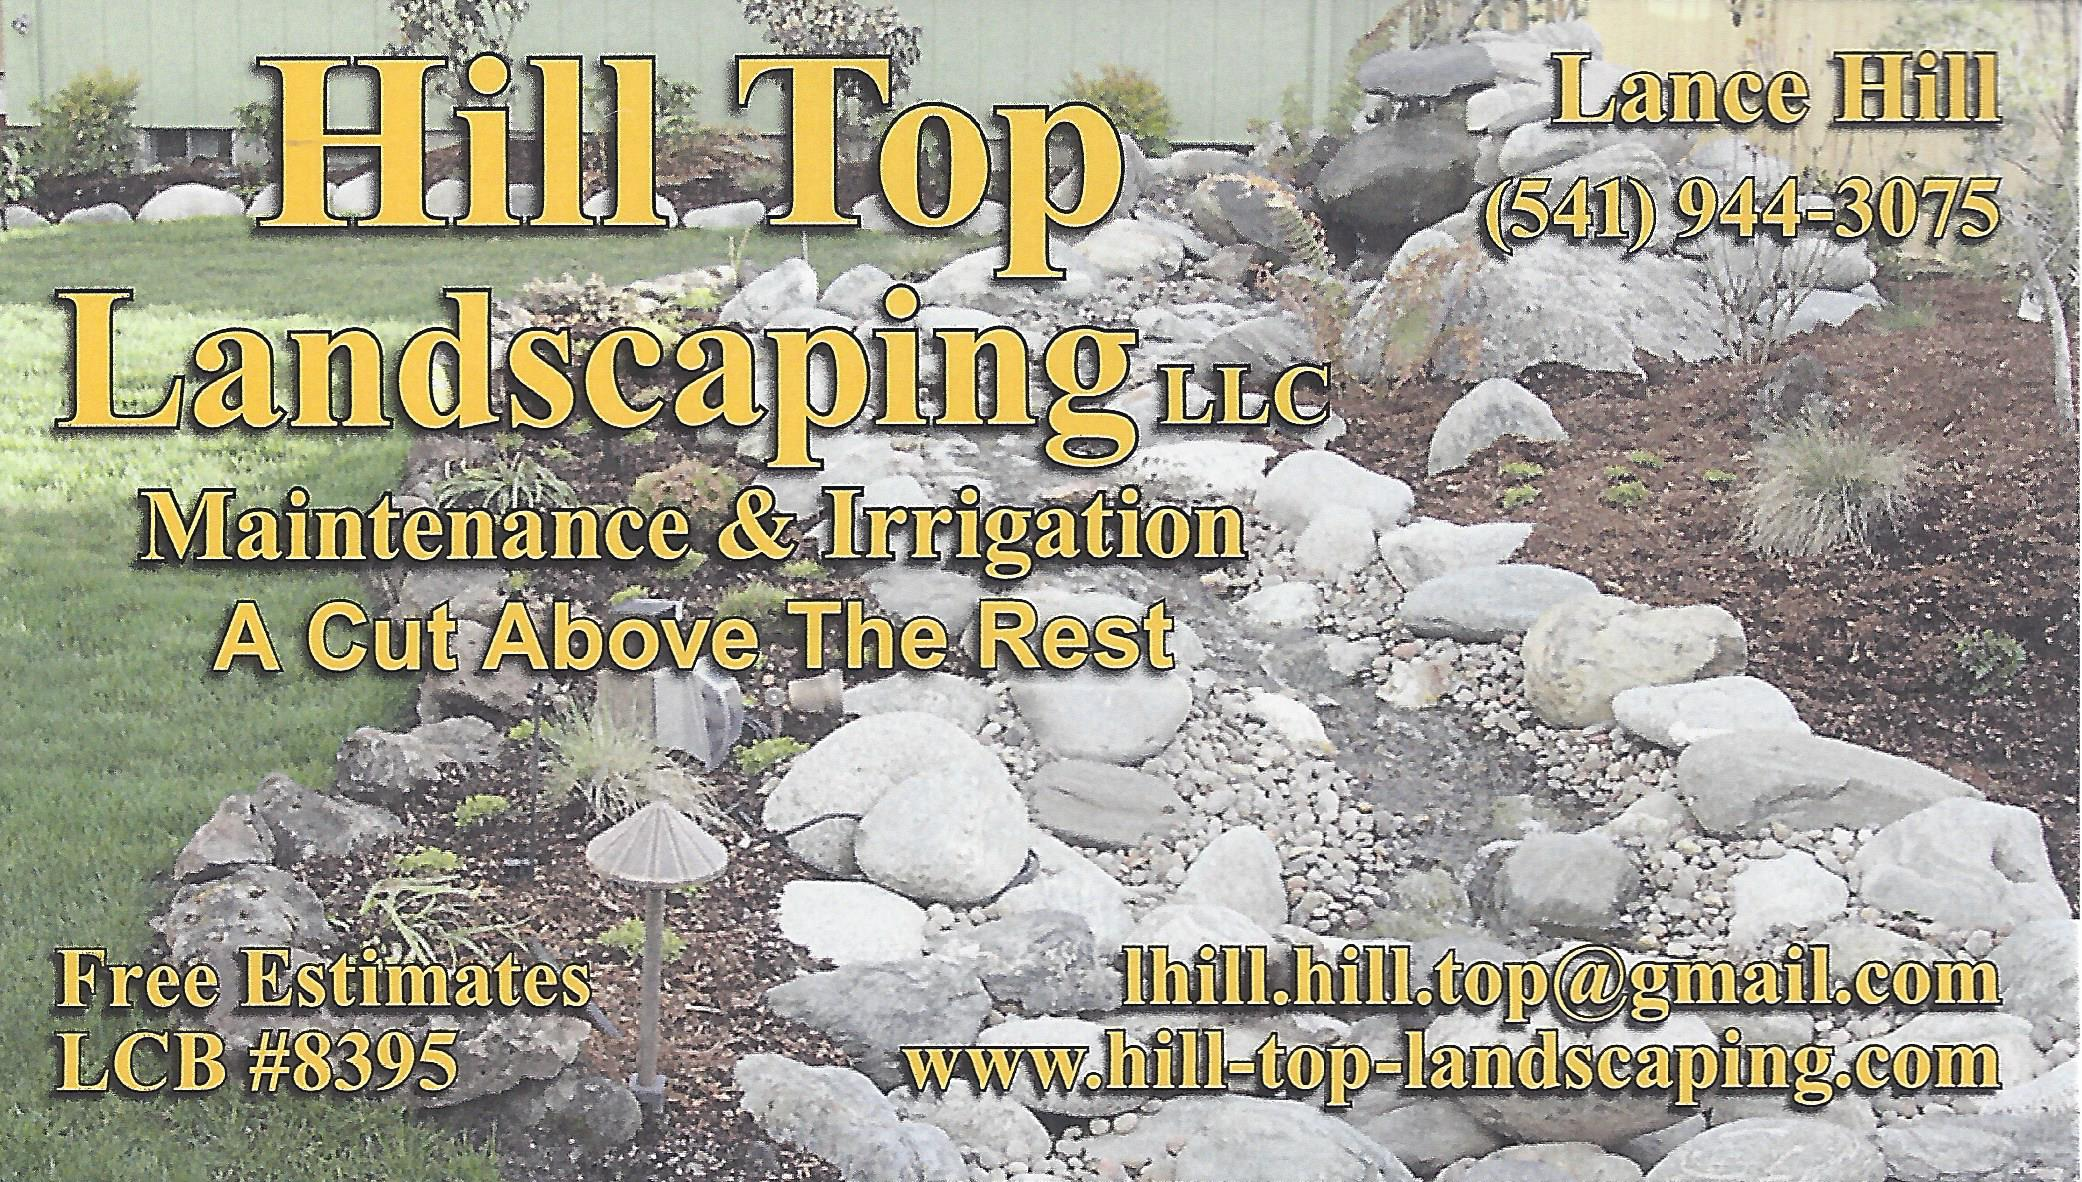 Hill Top Landscaping